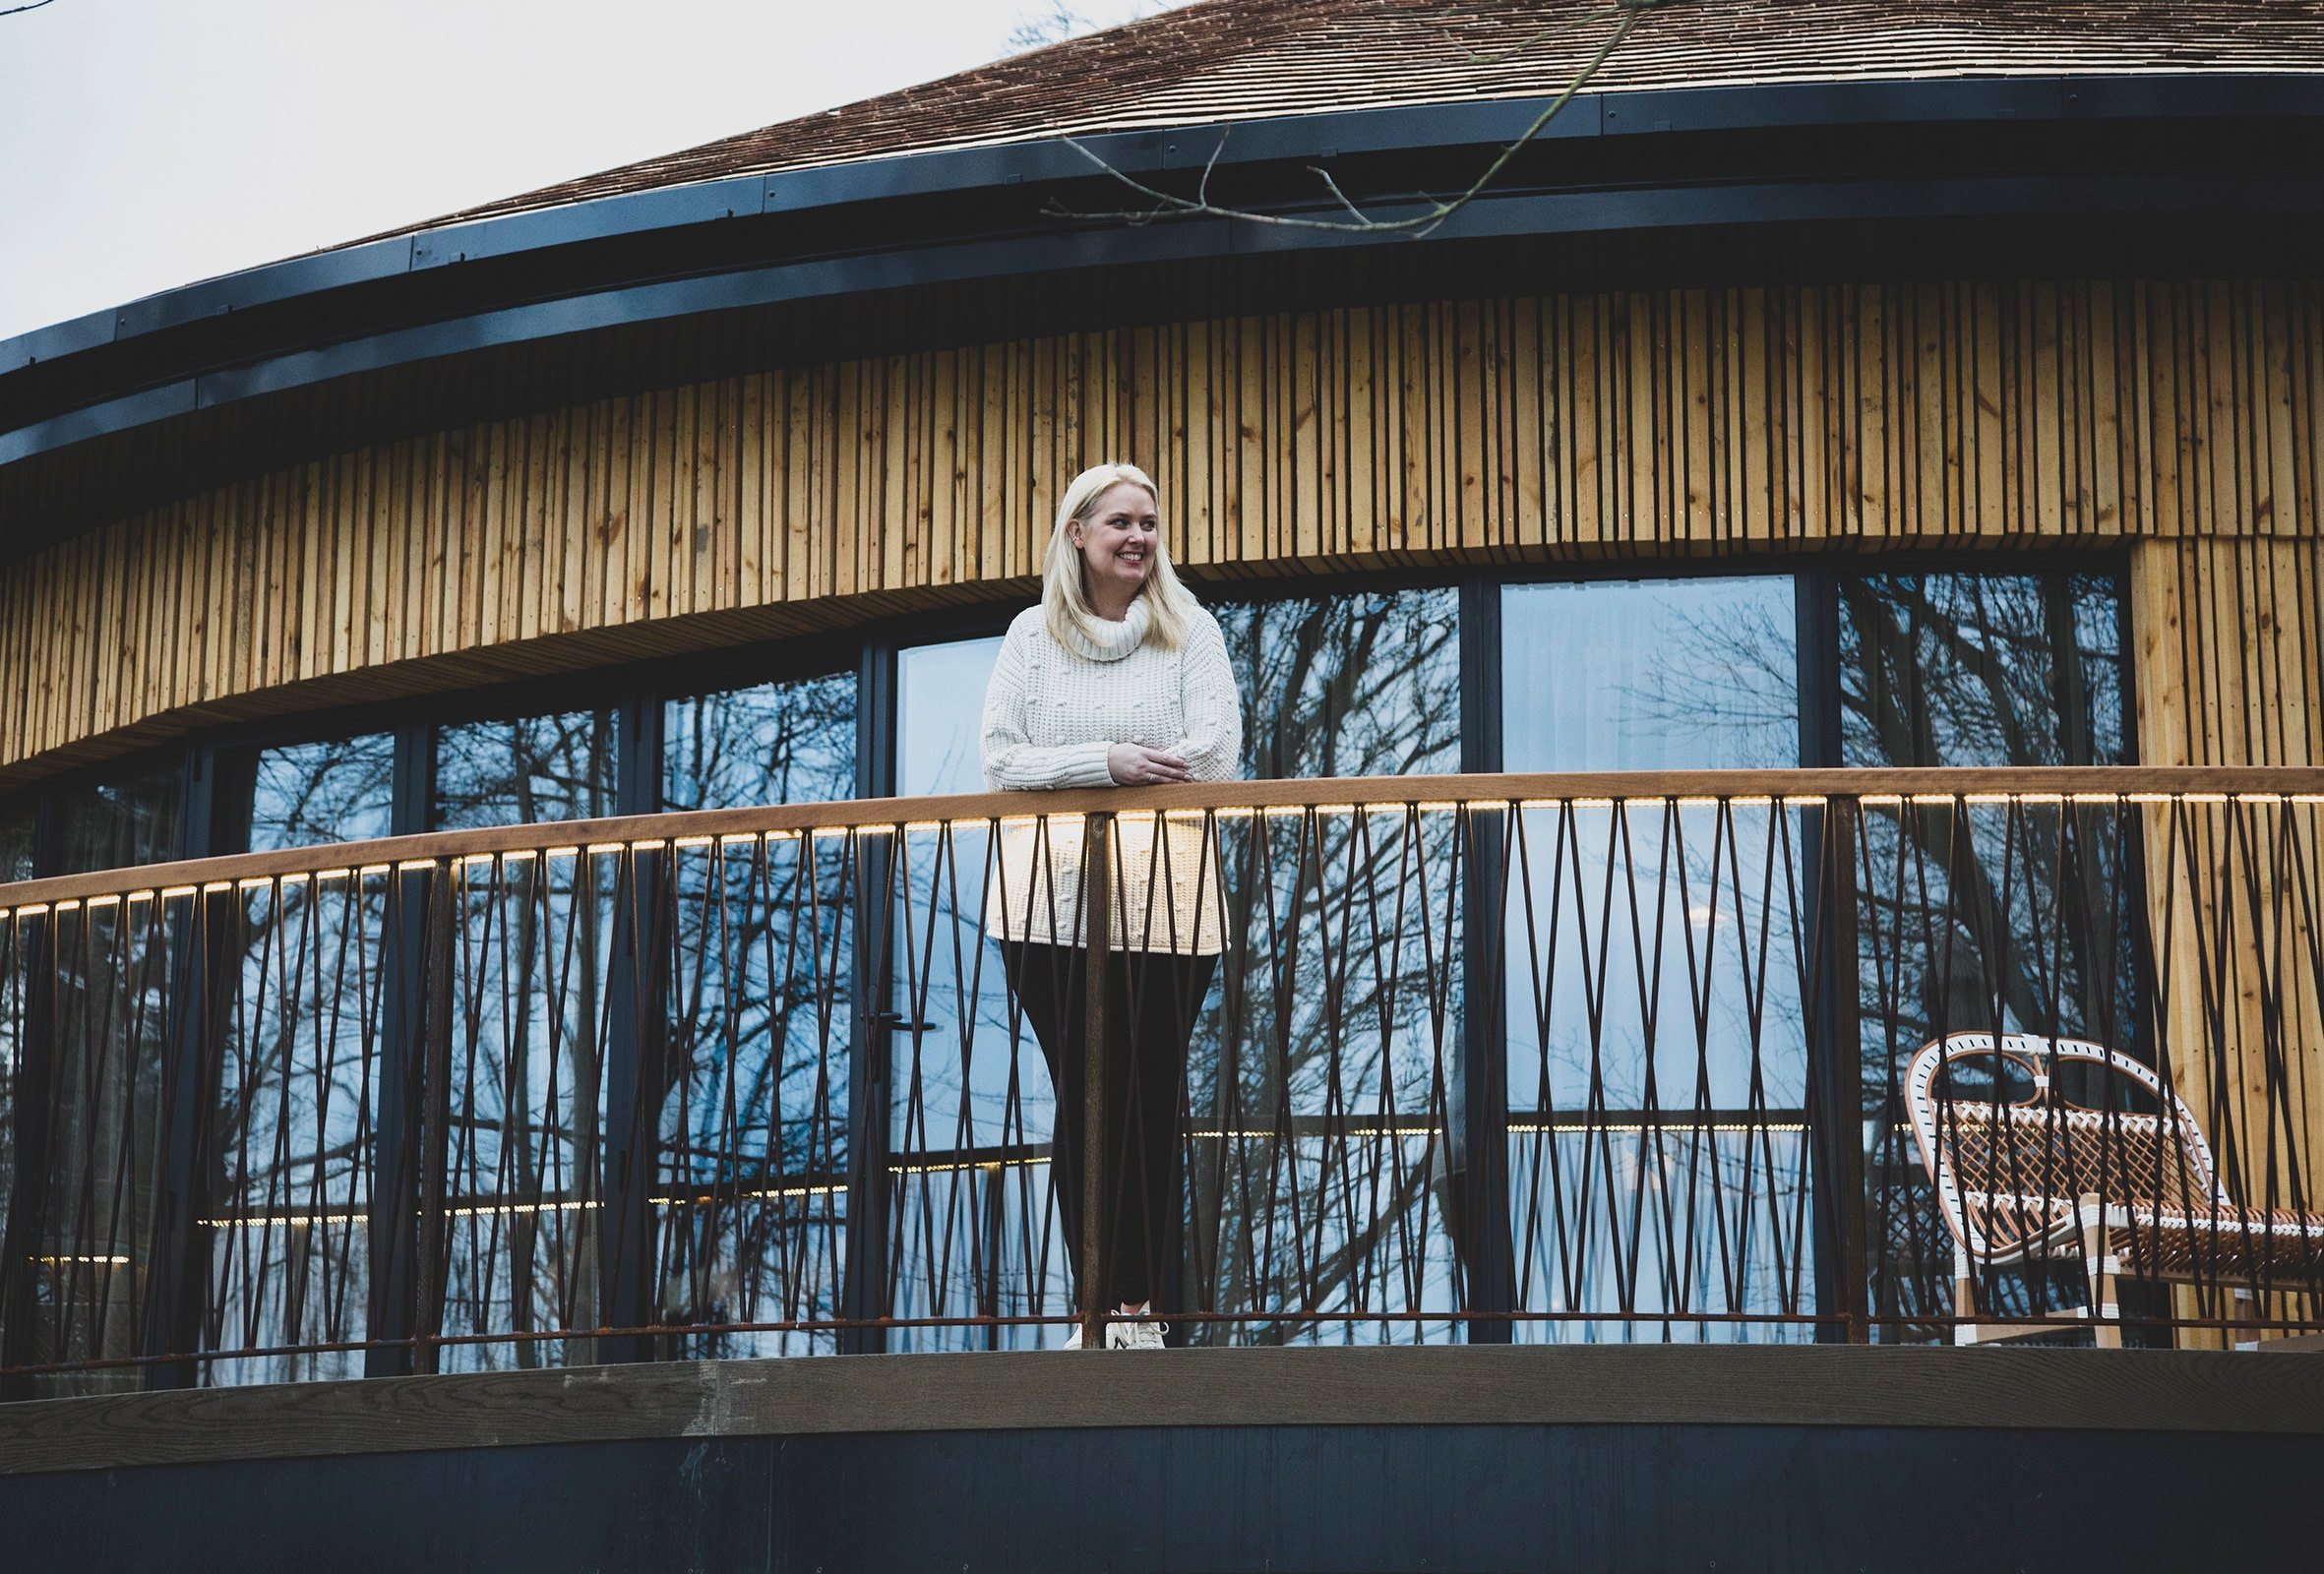 Louise standing on the balcony of the treehouse